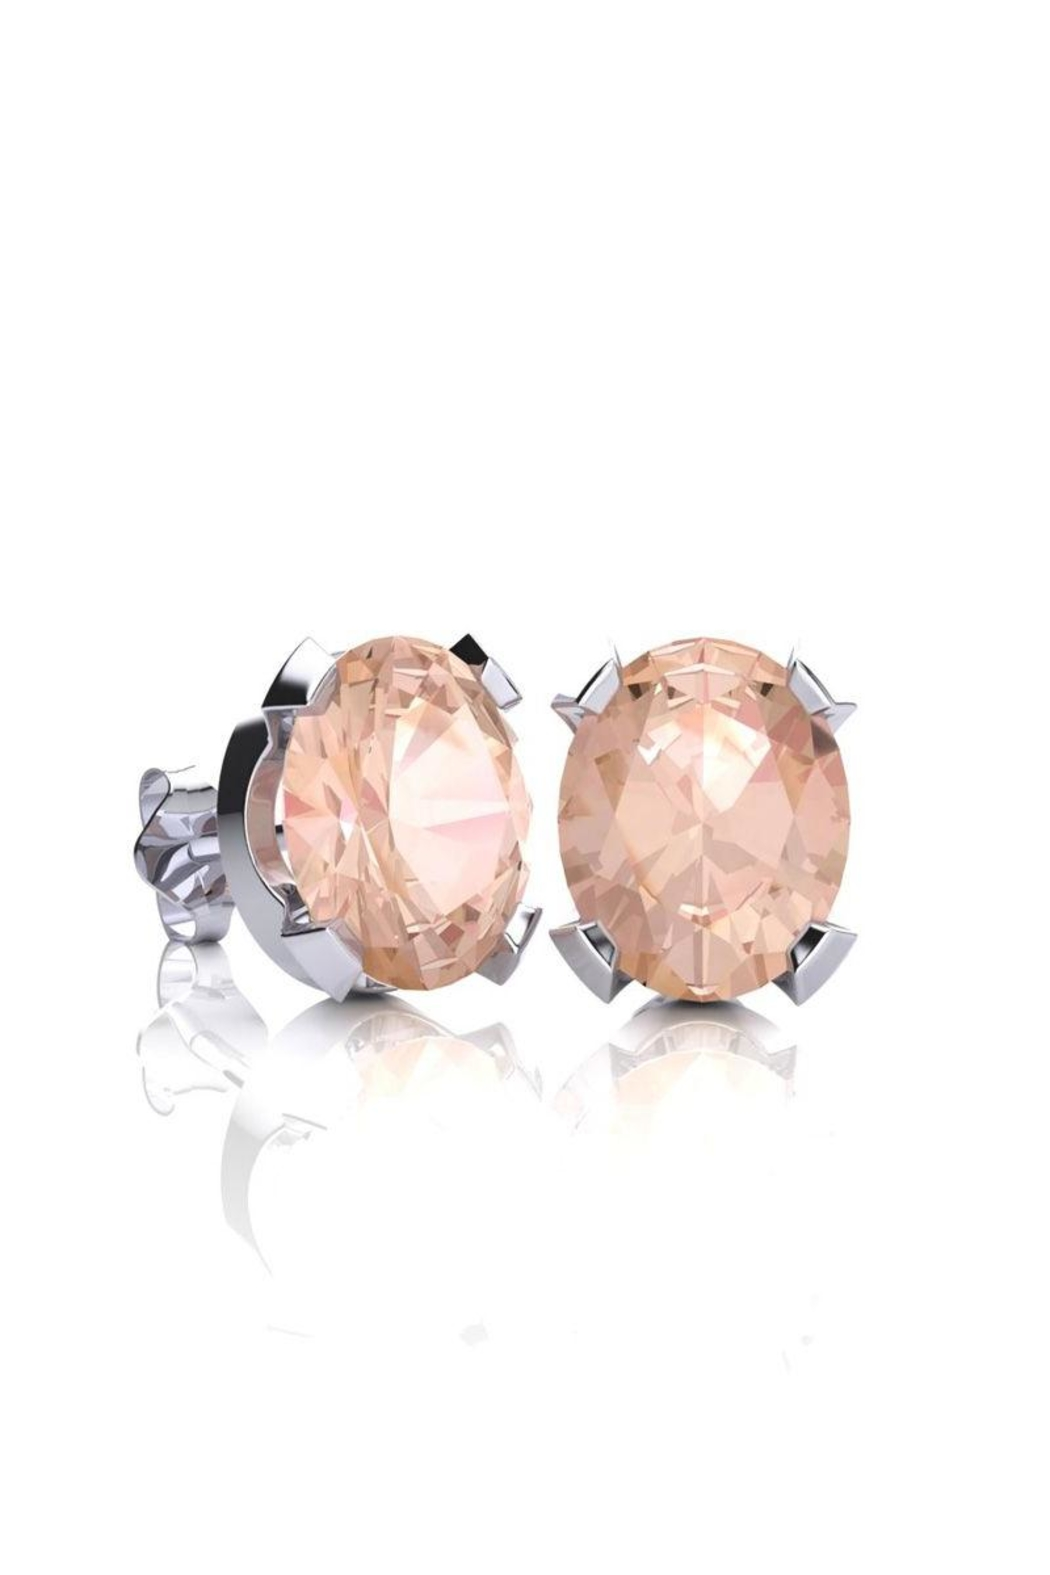 stud itm sl rose aaa morganite natural round fine gold jewelry day mothers earrings